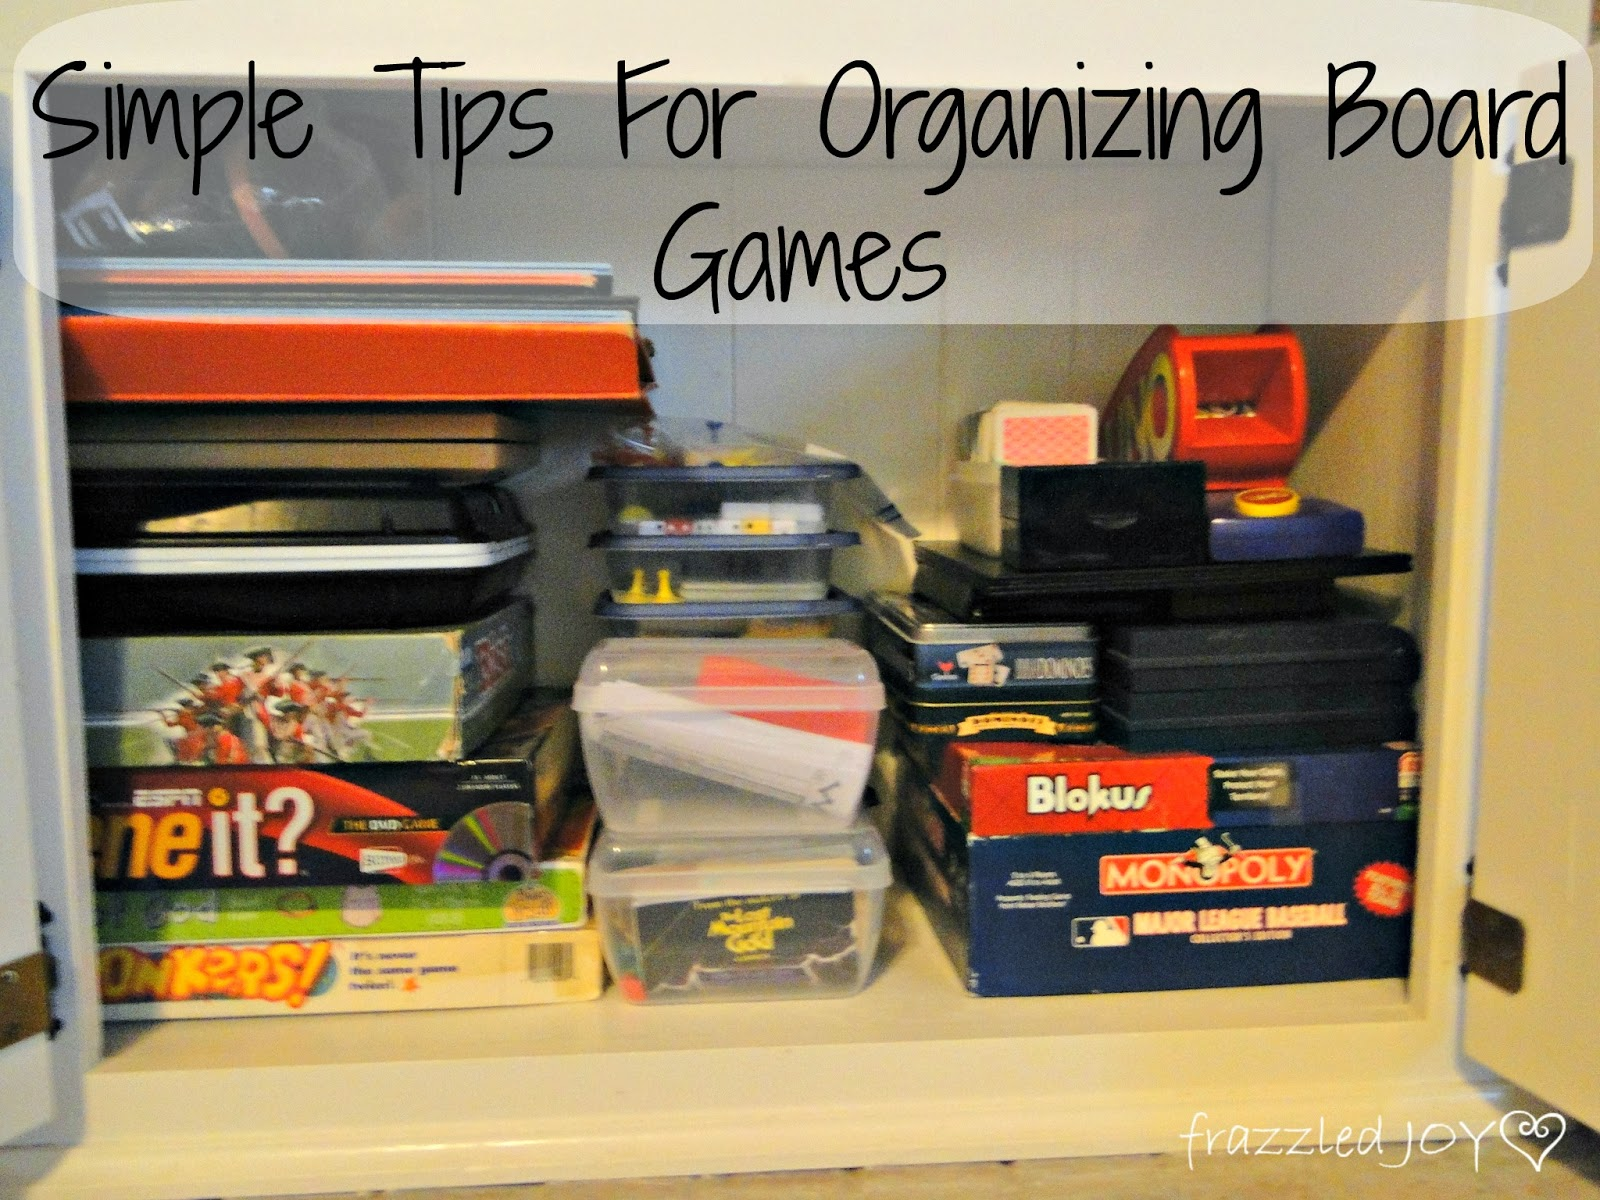 Simple tips for organizing board games